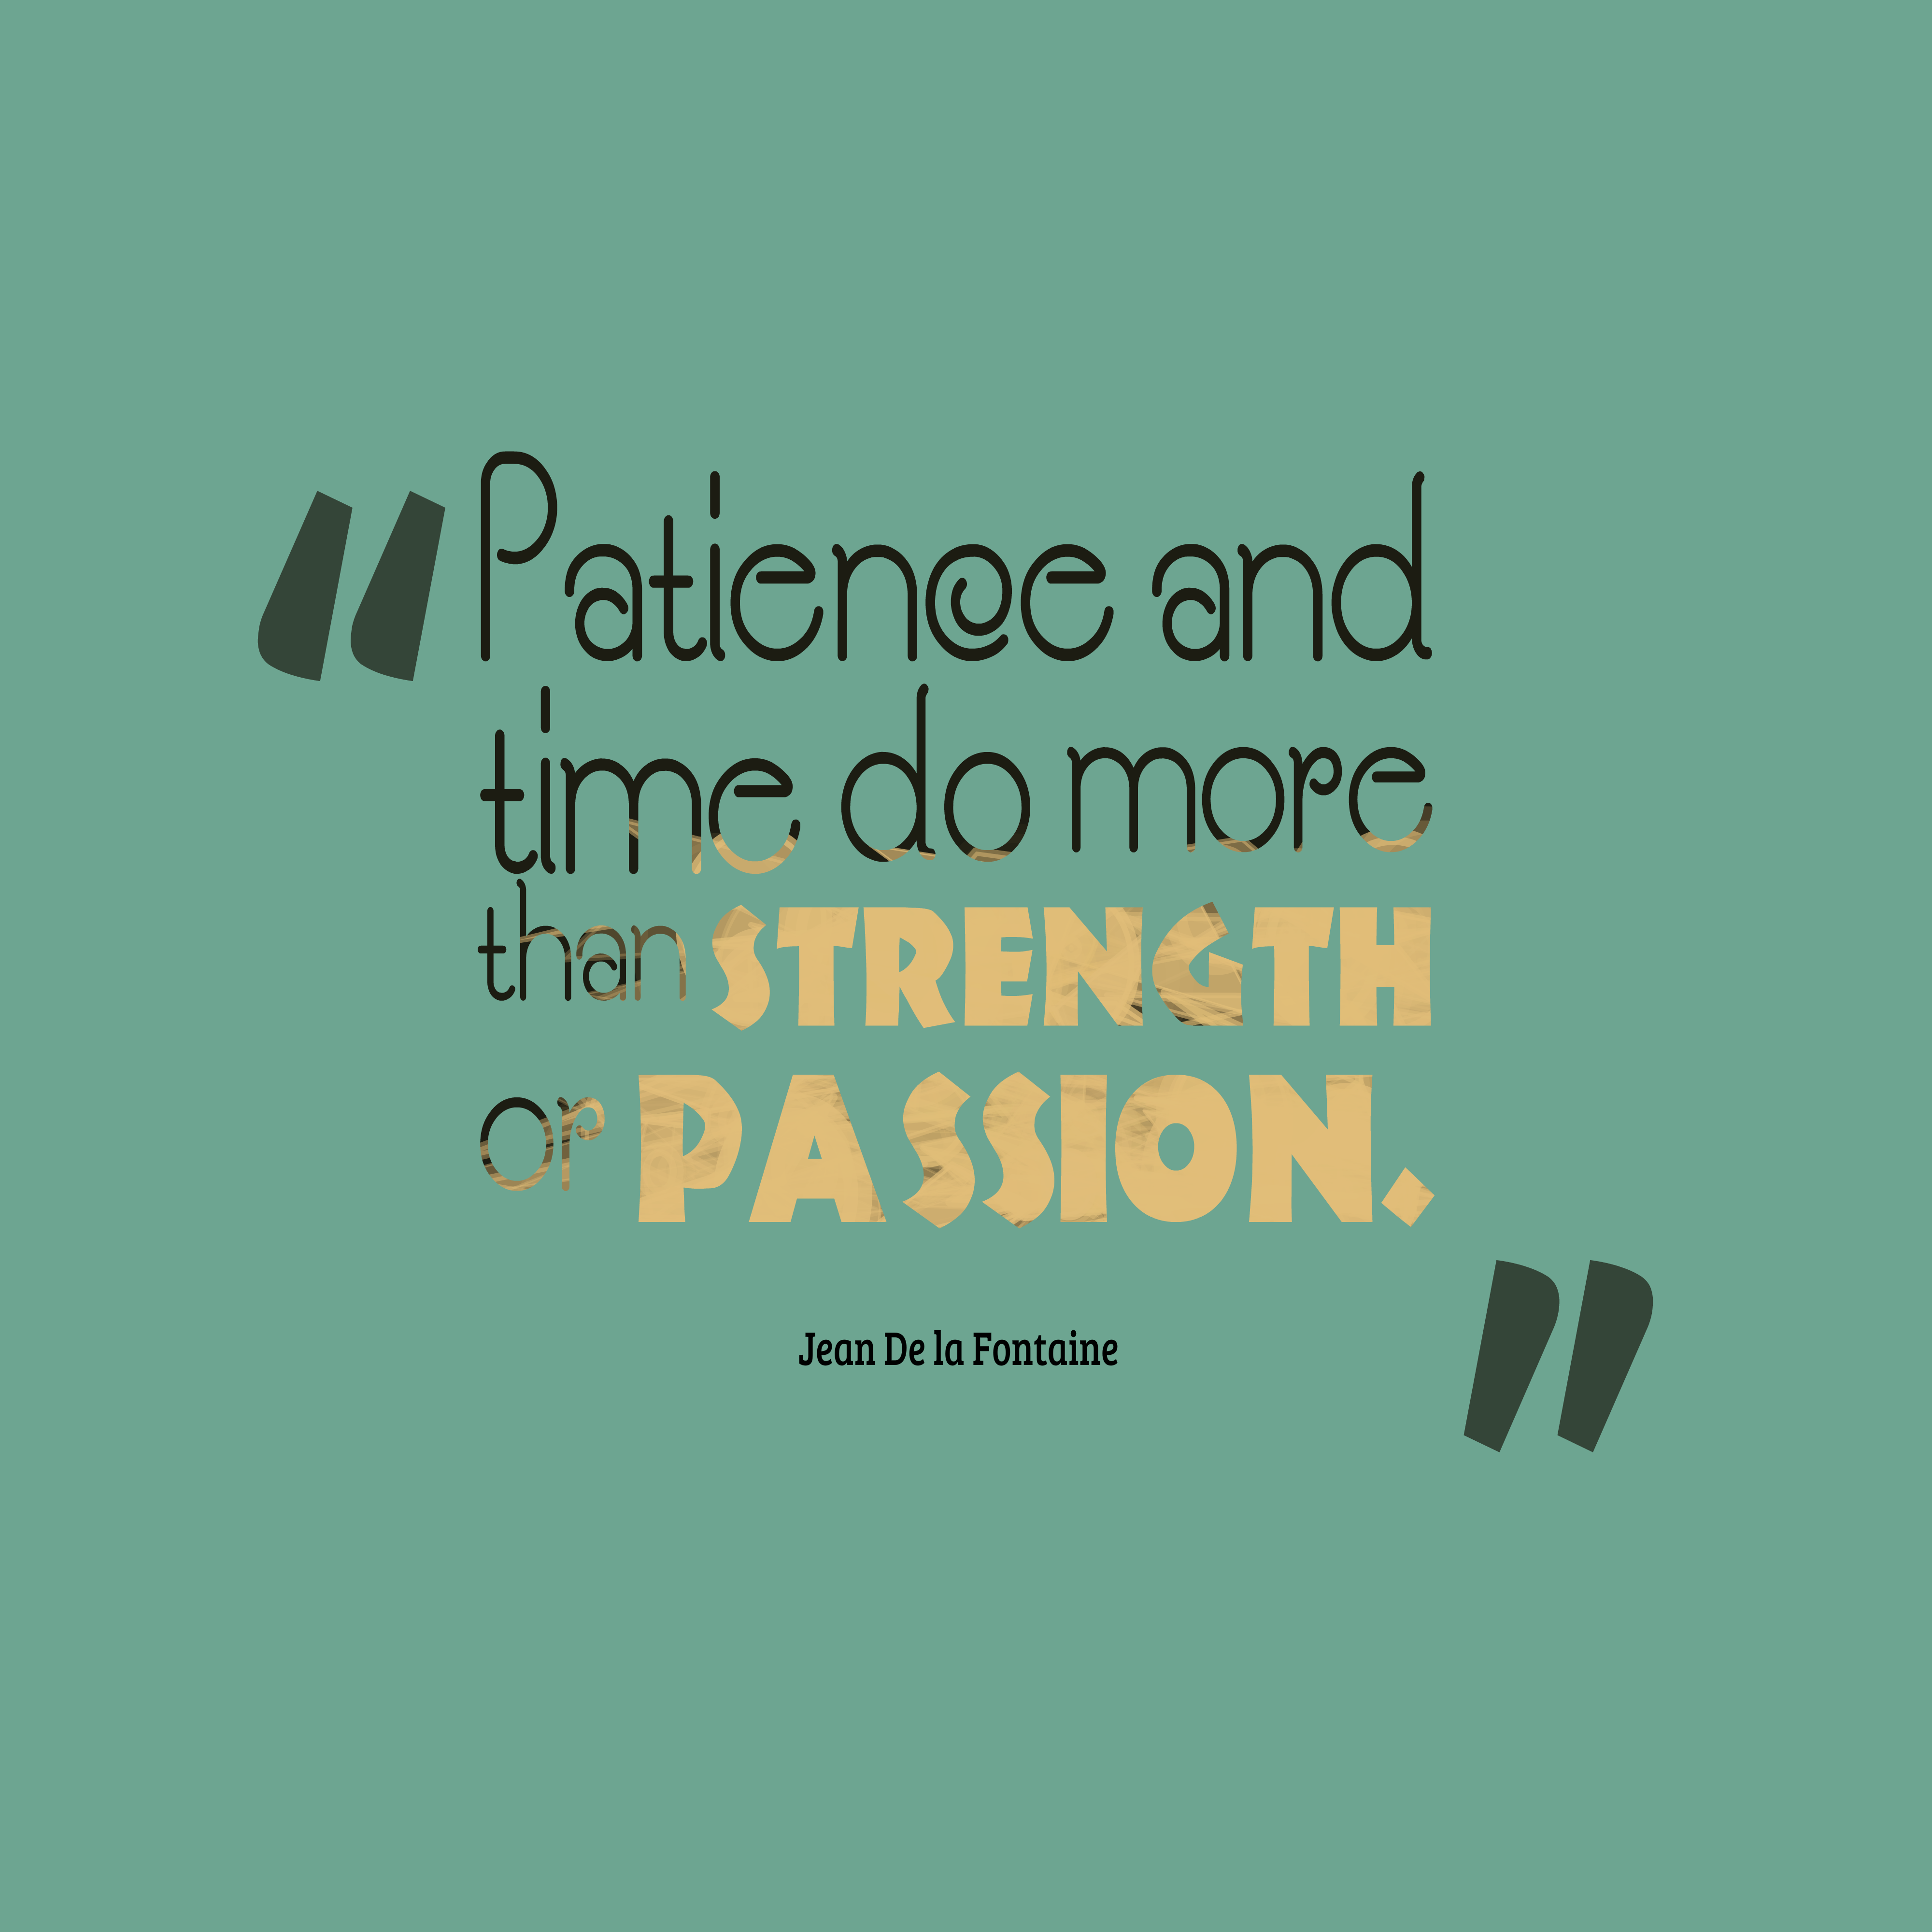 Jean De La Fontaine Quote About Patience